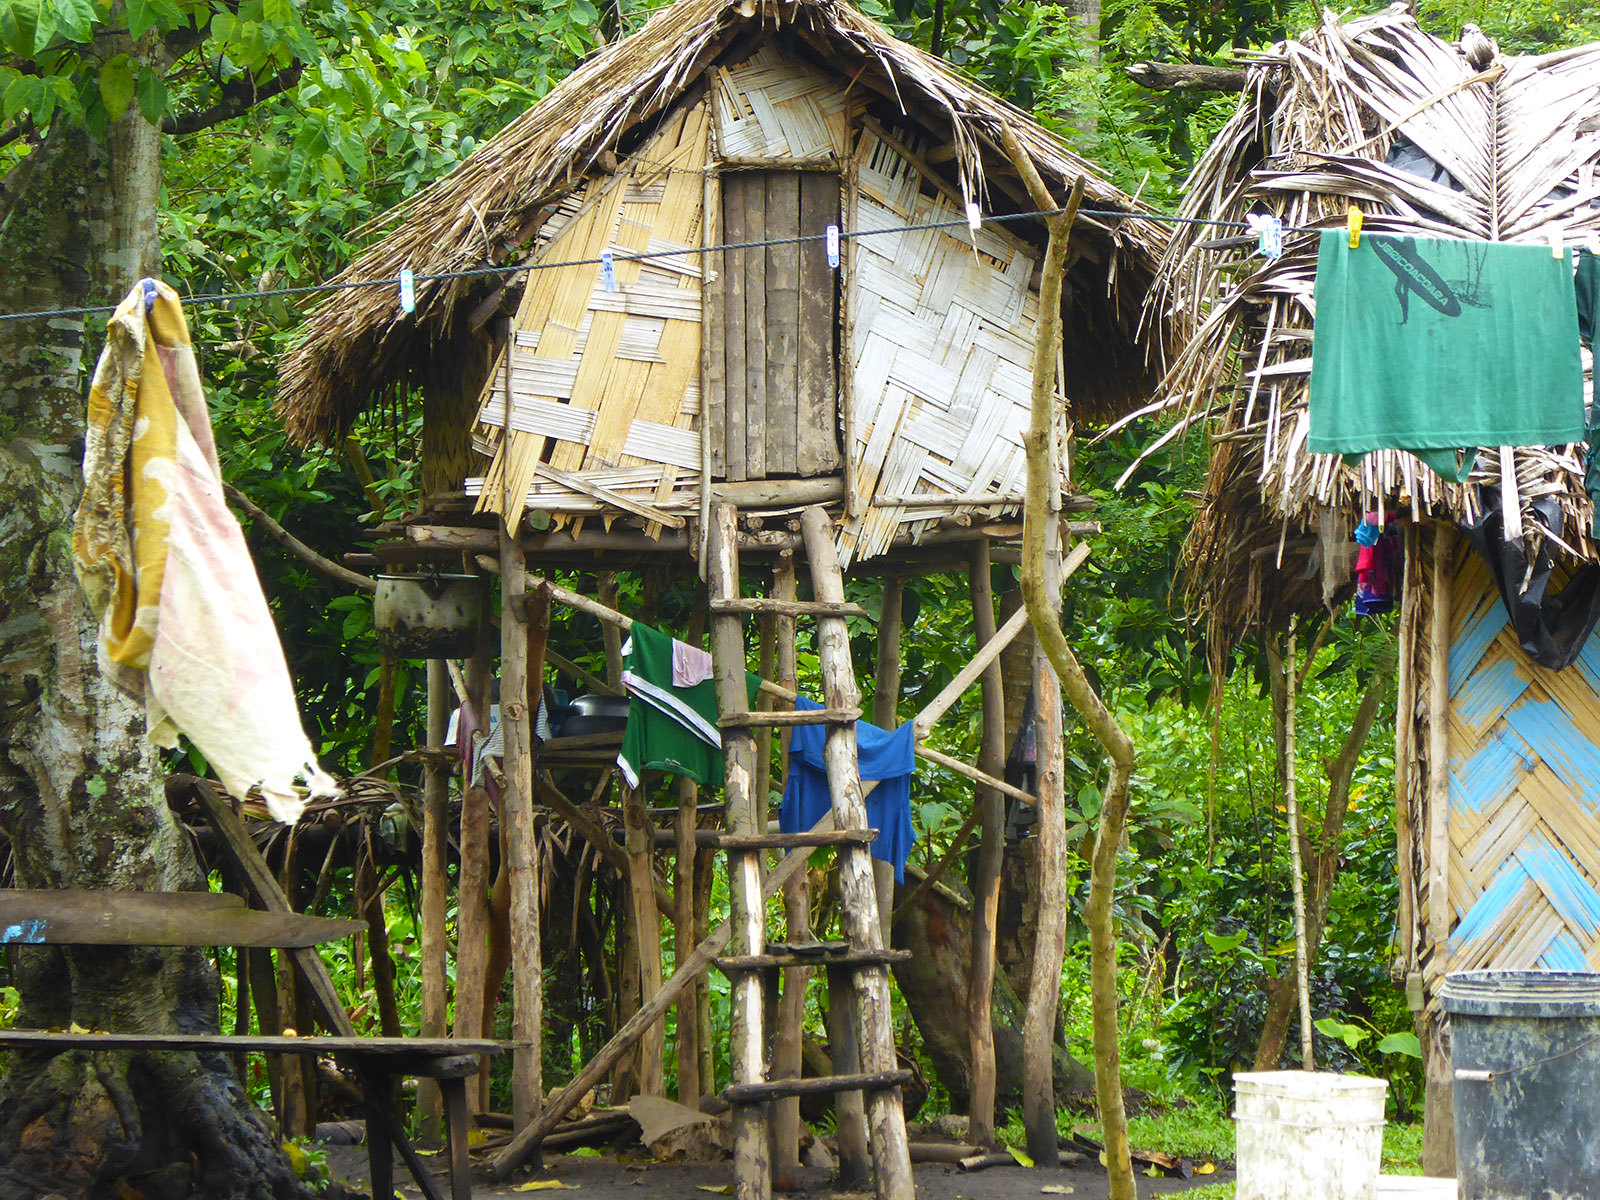 Tourism Toolbox | Robust Buildings – Tourist Bungalow Designs for Extreme Situations.